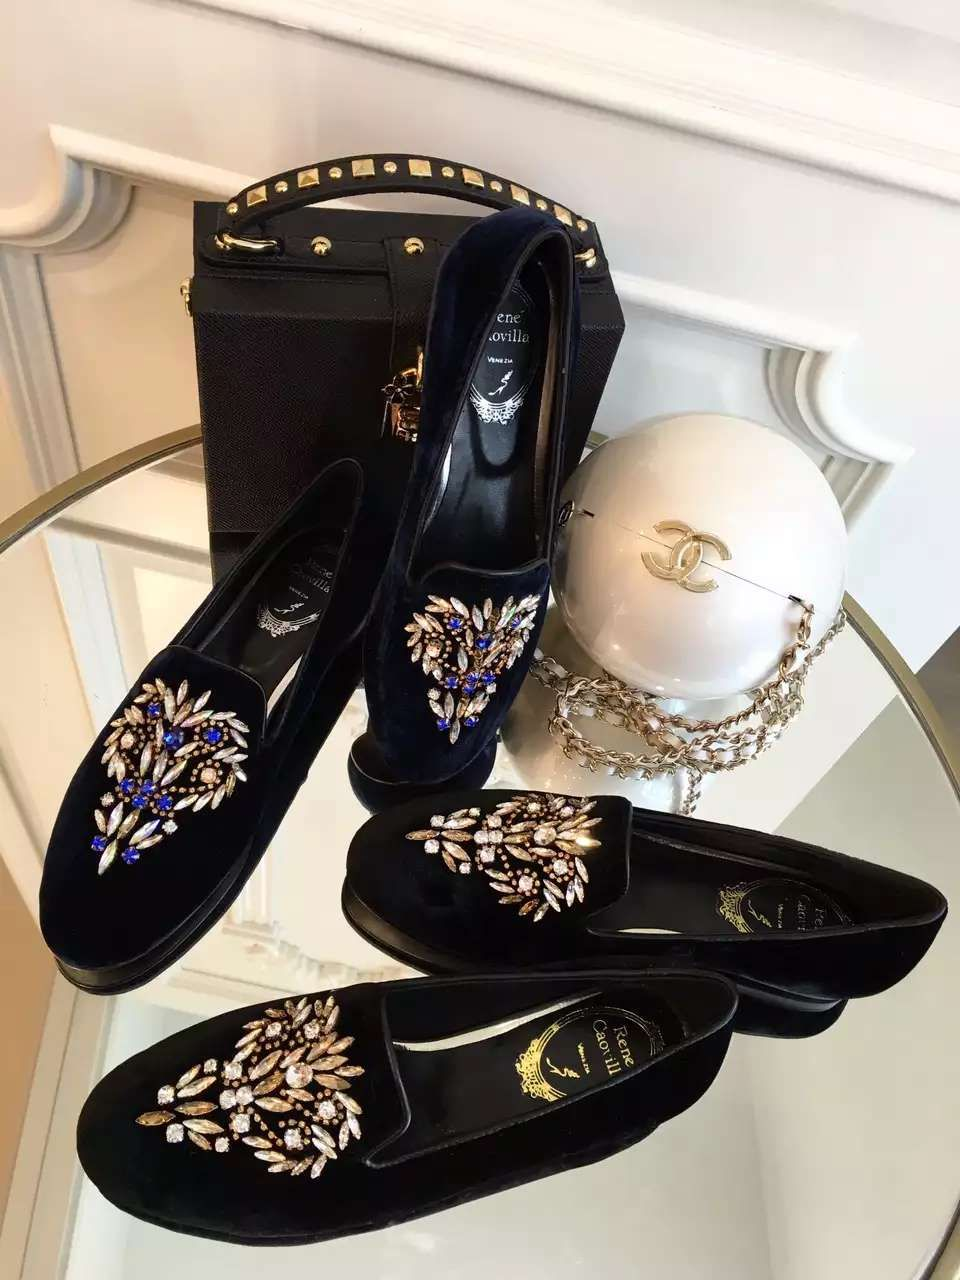 rene caovilla Shoes, ID : 51987(FORSALE:a@yybags.com), shopping handbags, toddler backpacks, leather attache case, backpacks for boys, mens attache case, briefcase for men, handbags and purses, spring handbags, leather hobo handbags, discount handbags, backpack sale, travelpack, leather briefcase, zipper wallet, rolling laptop backpack #renecaovillaShoes #renecaovilla #unique #purses